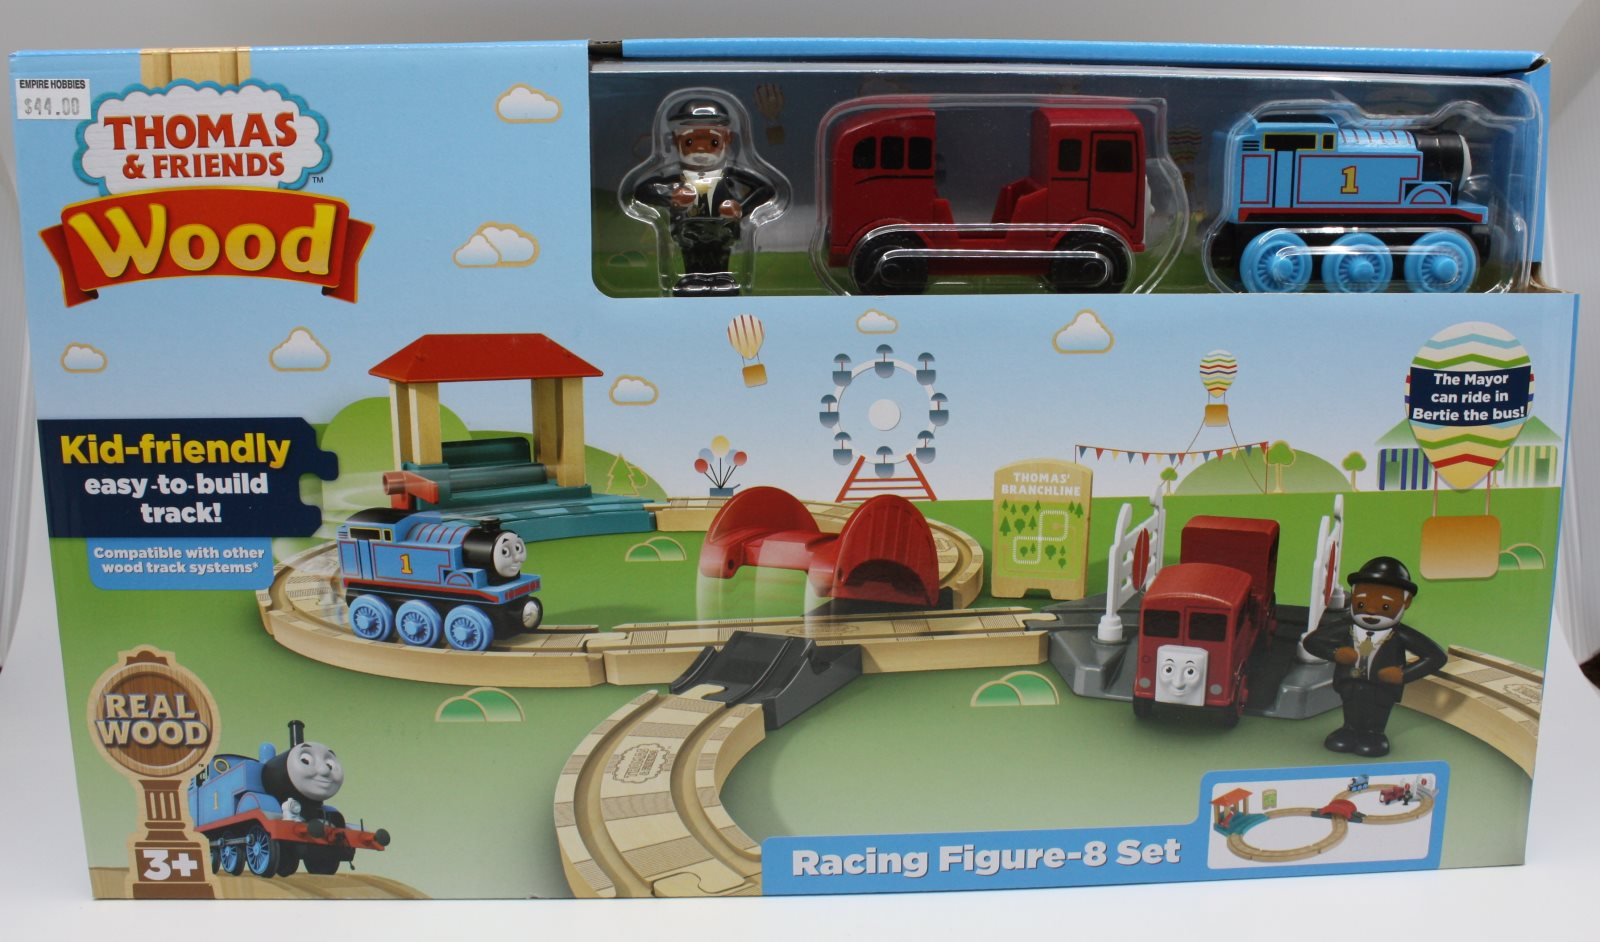 Details about Fisher Price GGG73 FP Thomas, Figure 8 Set